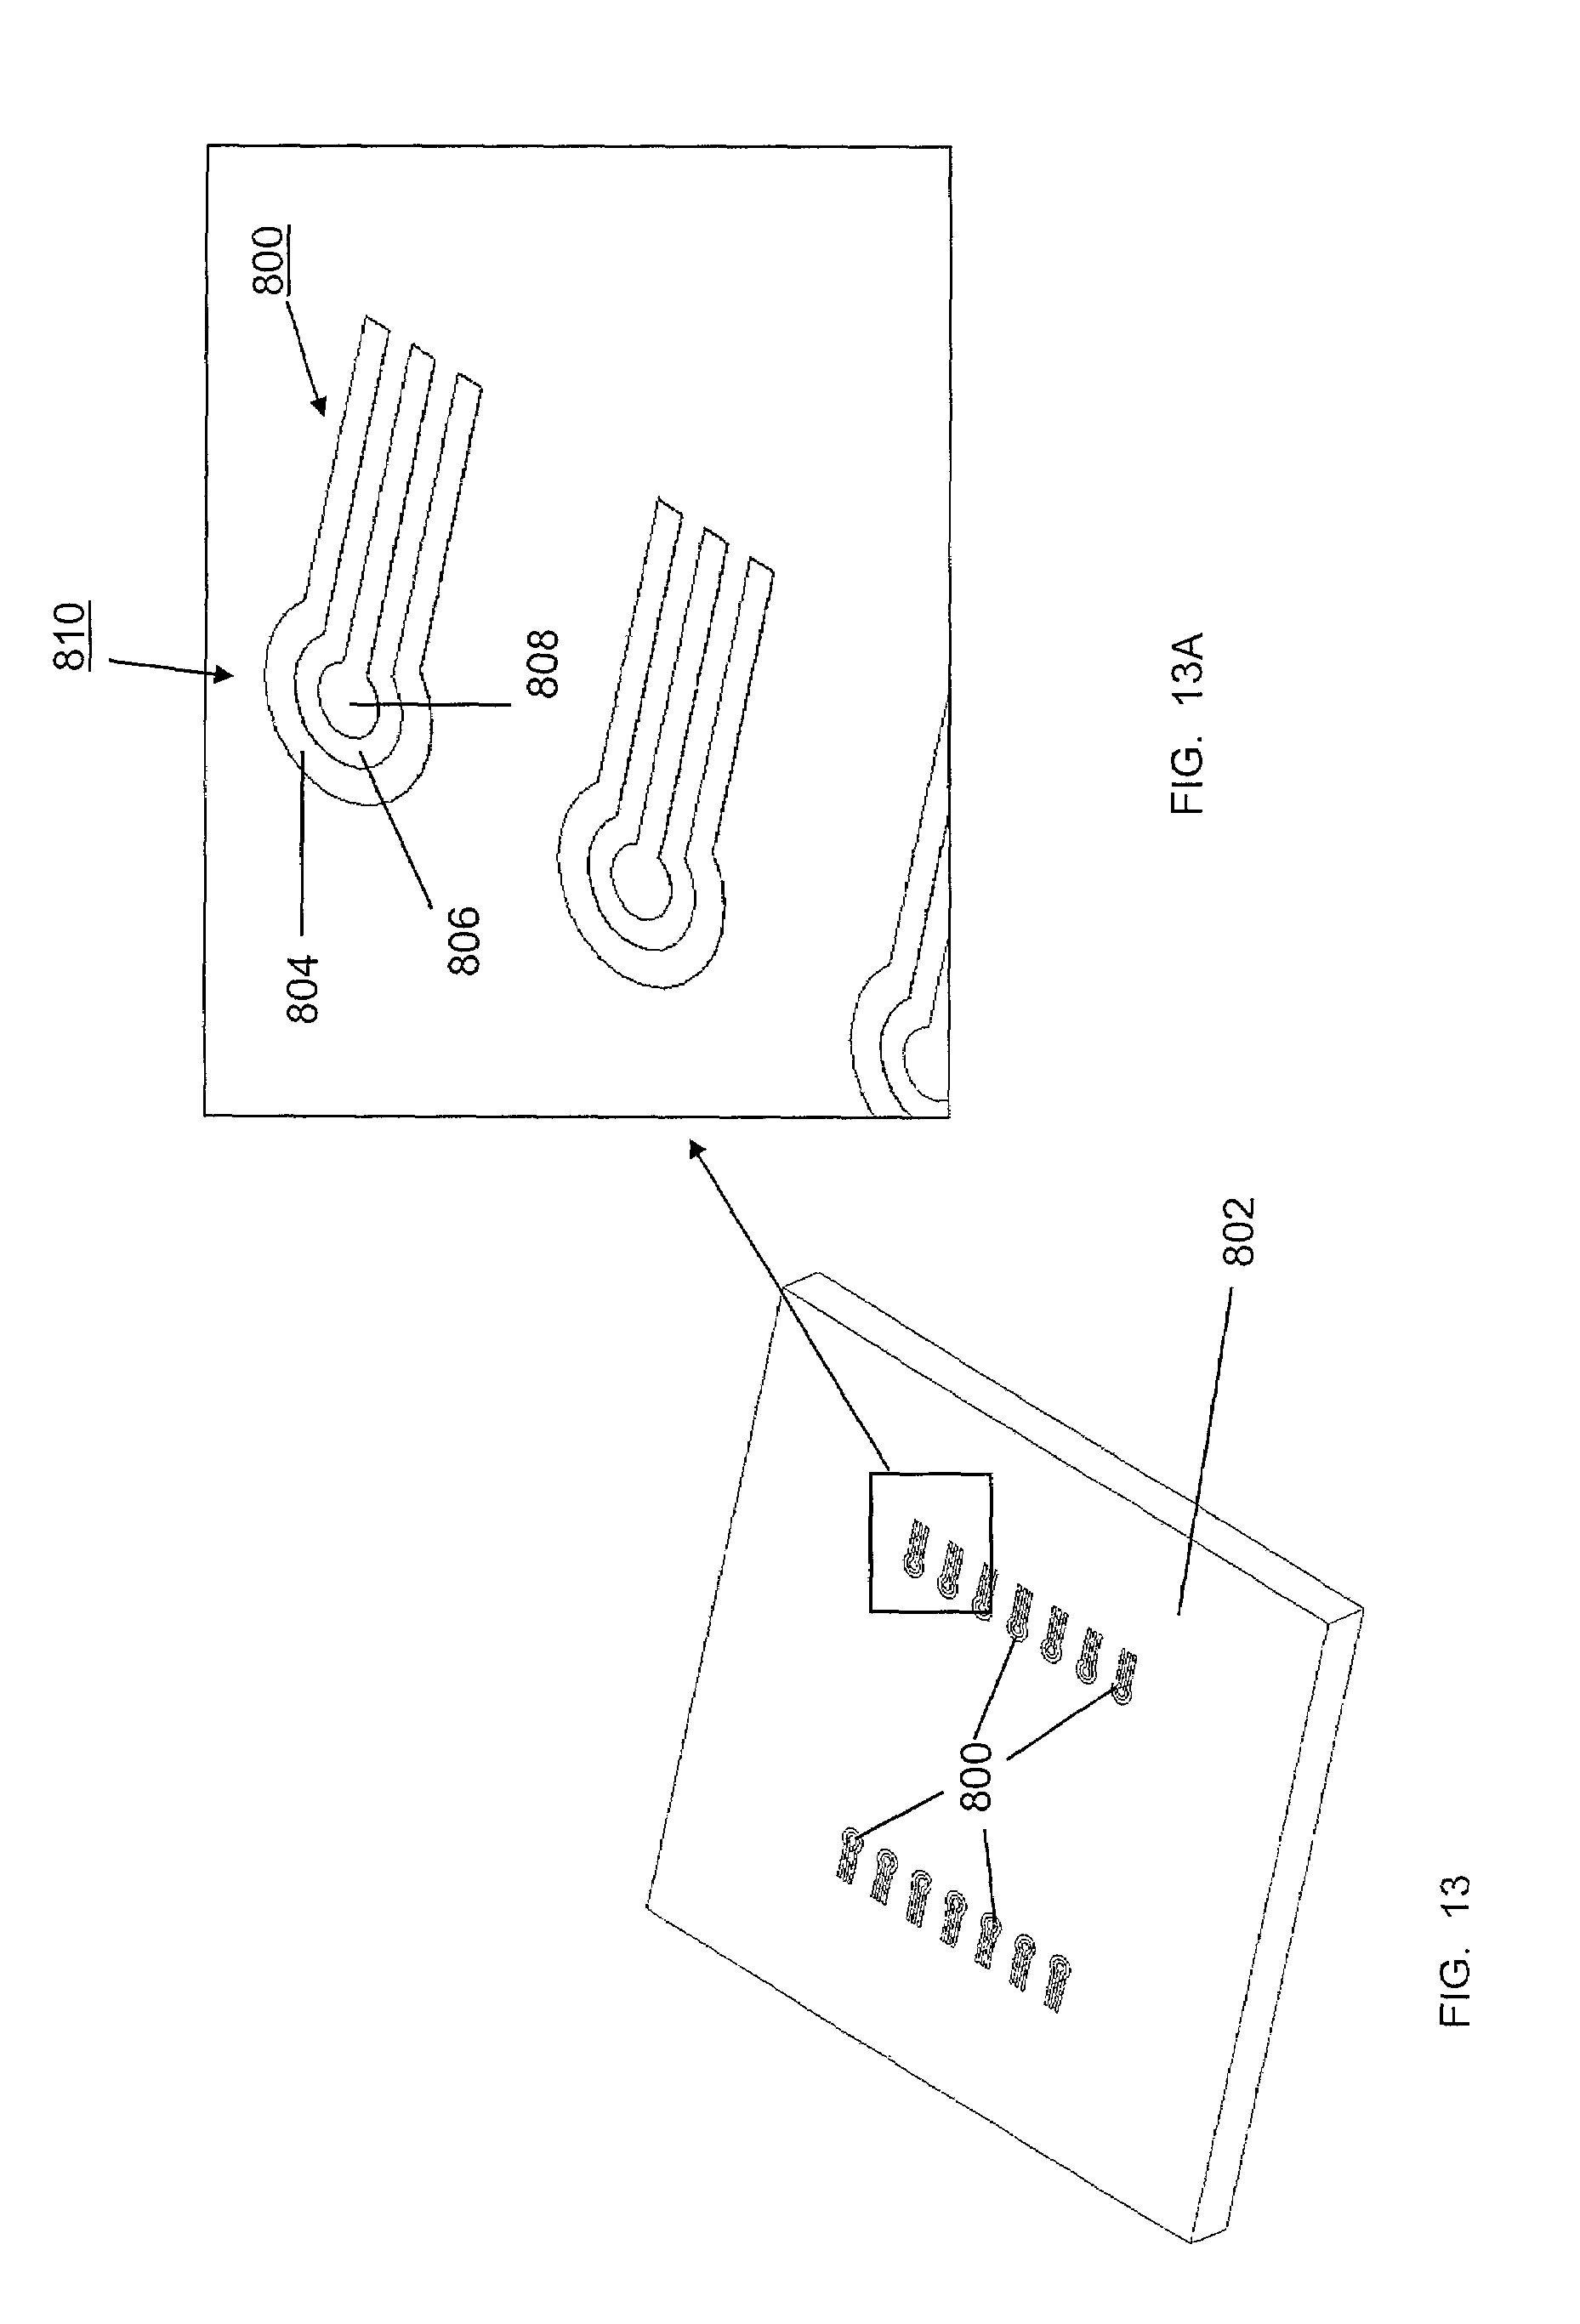 1966 Mustang Wiring Diagrams besides Throttle Body 34896 together with T9161014 Vw golf 1999 additionally 534721 further Showthread. on external transmission cooler